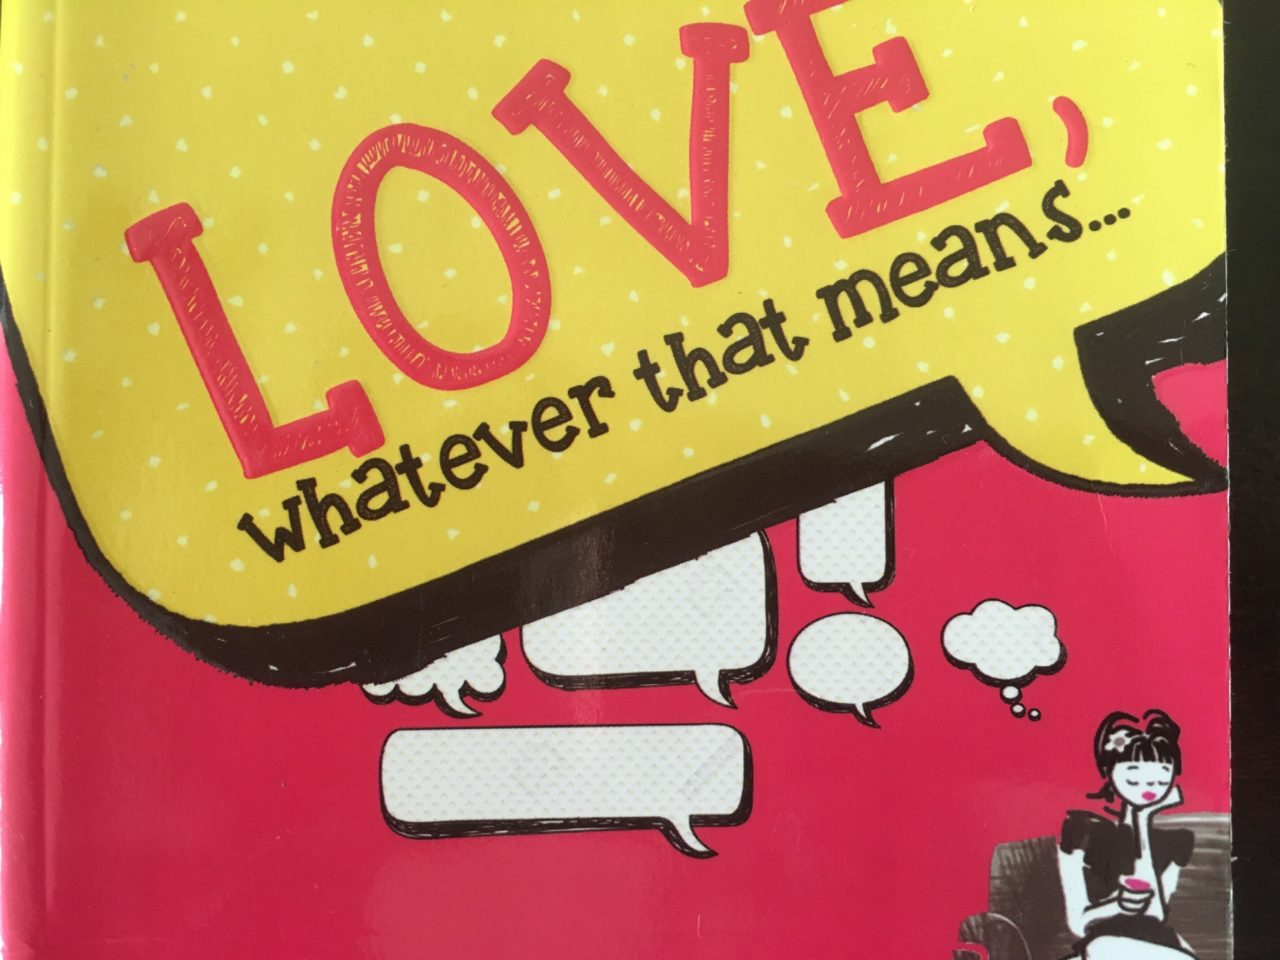 Love, Whatever That Means by Aditi Mathur Kumar #BookReview featuring The Body Shop Lipstick Coral Cutie